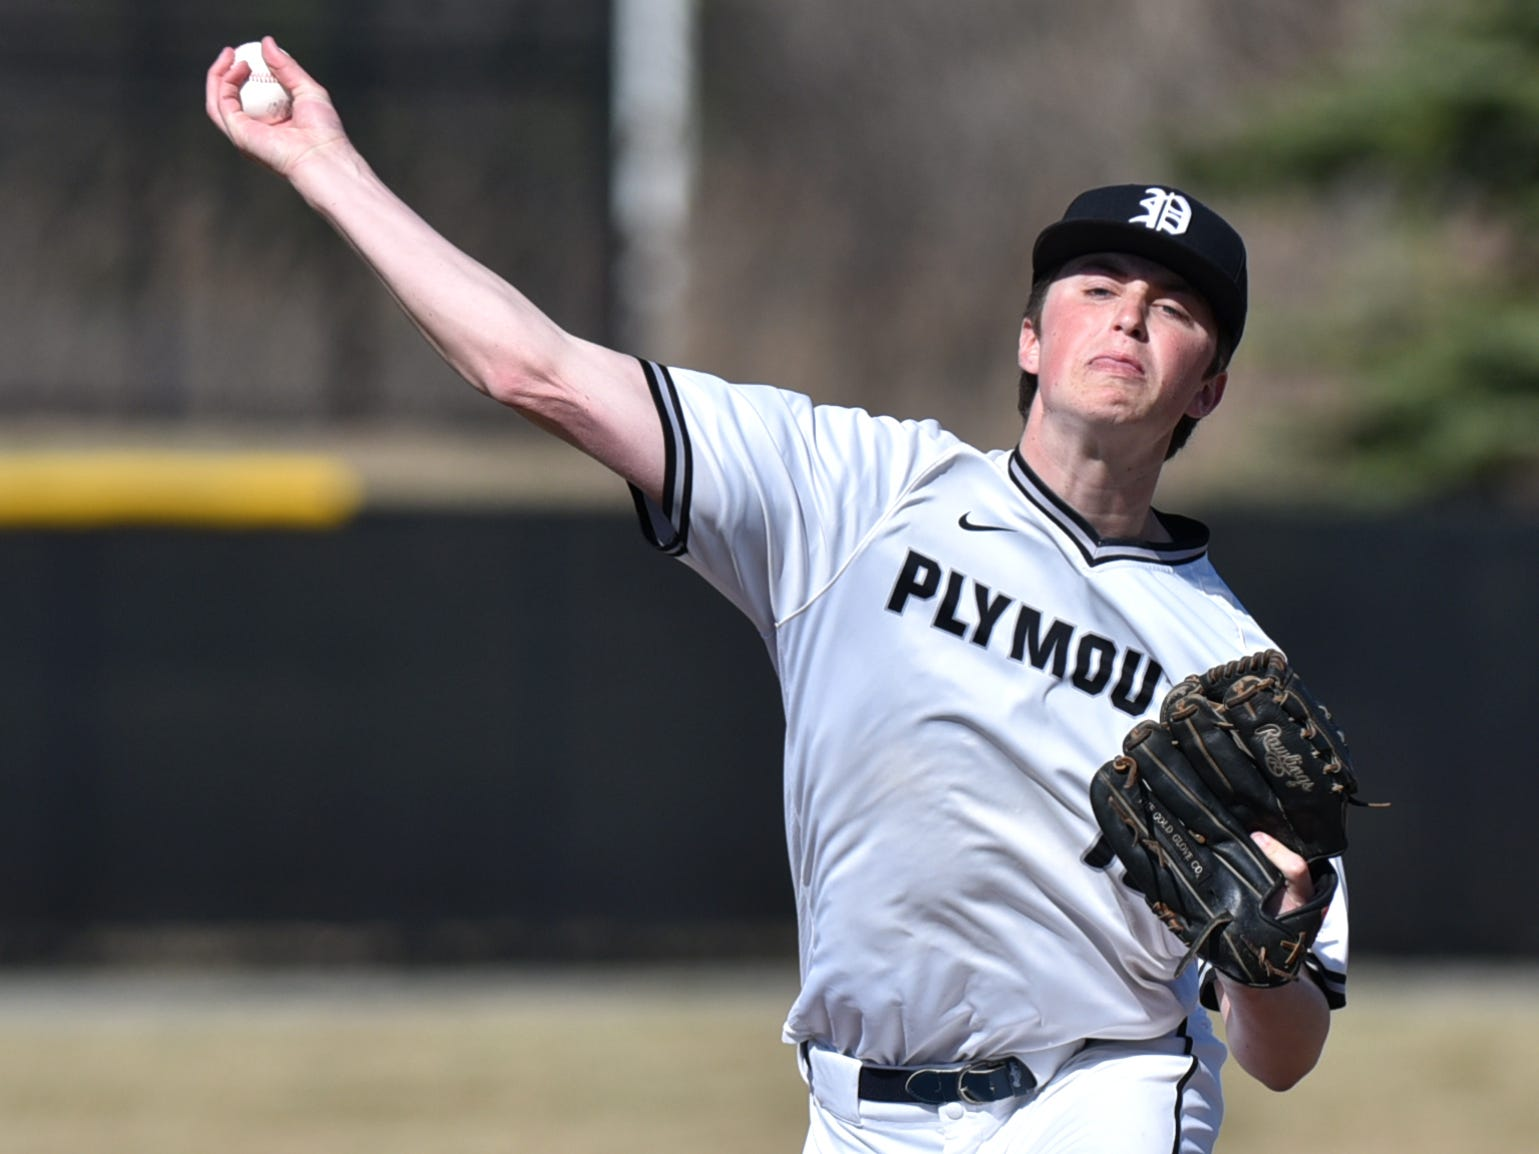 Plymouth Wildcat Dylan Brown pitches to the Northville Mustangs.